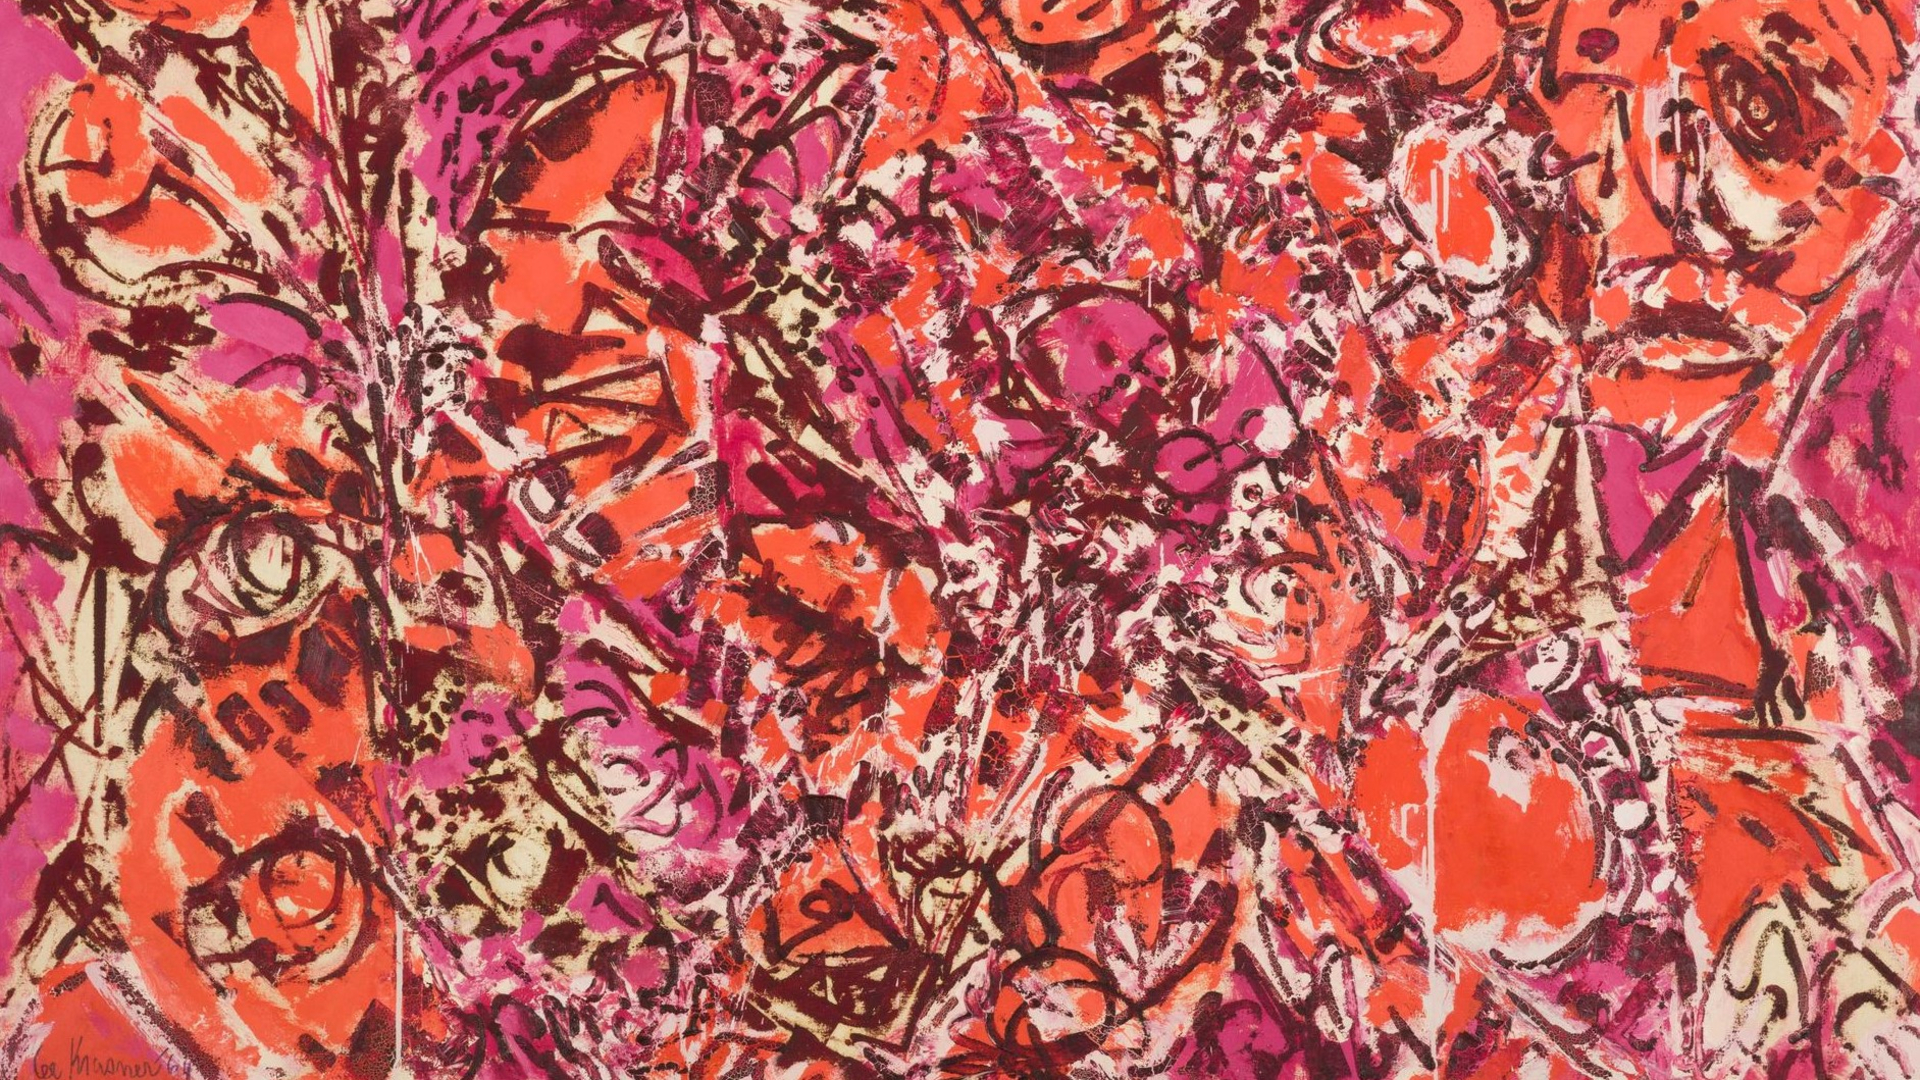 Bright orange and pink abstract painting by Lee Krasner as part of Lee Krasner: Living Colour exhibition at the Barbican